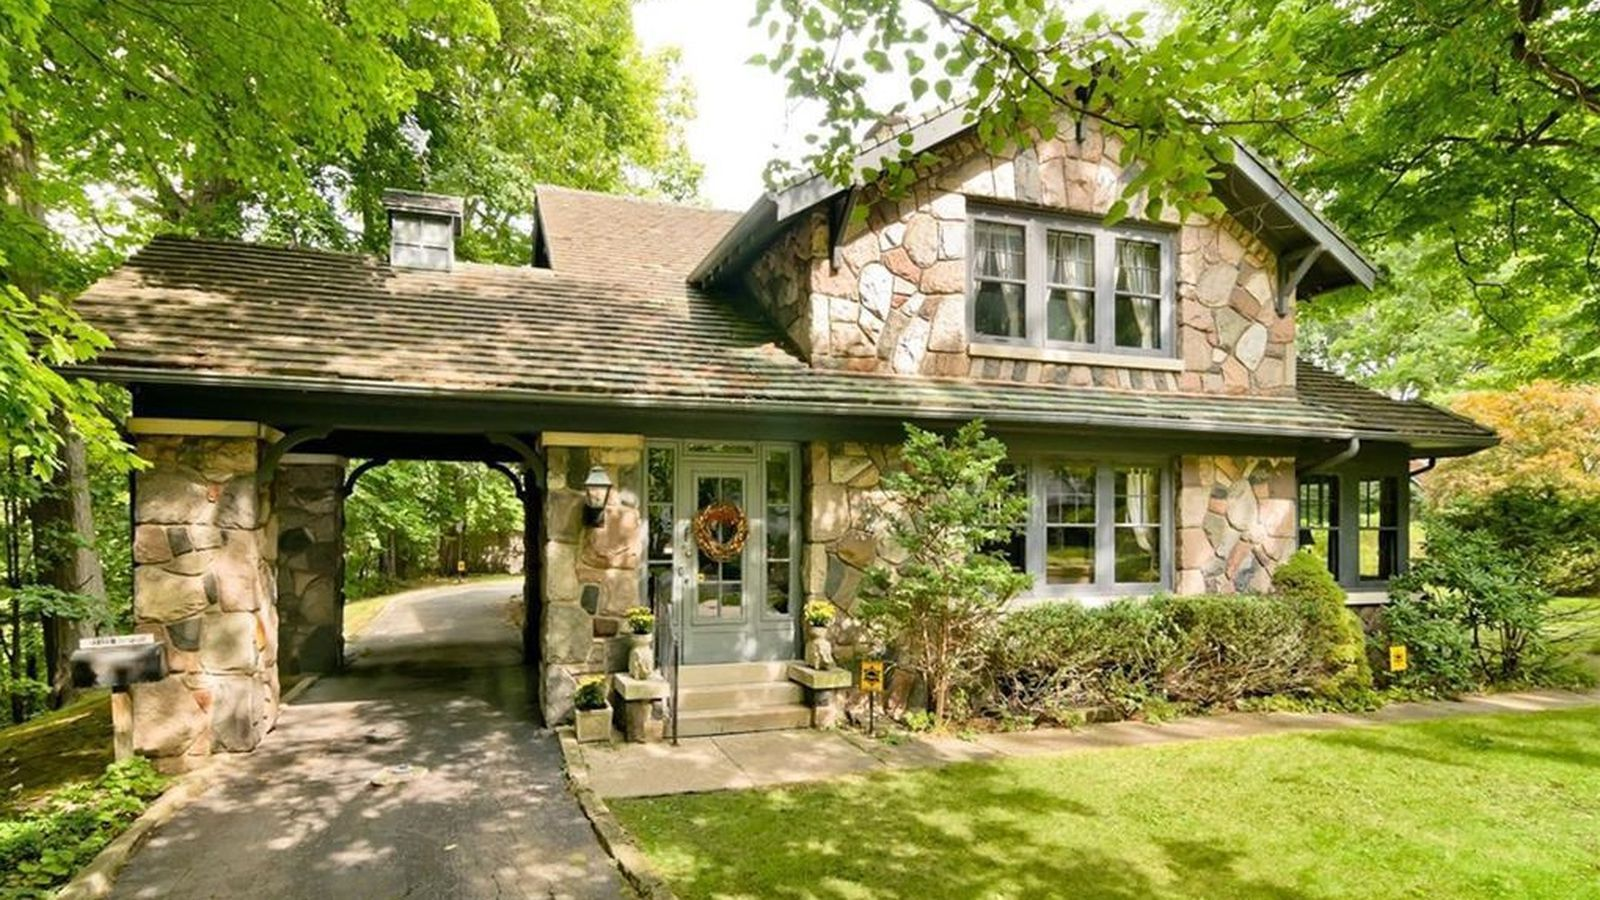 Stunning Old Redford Stone House In Wooded Setting Asks